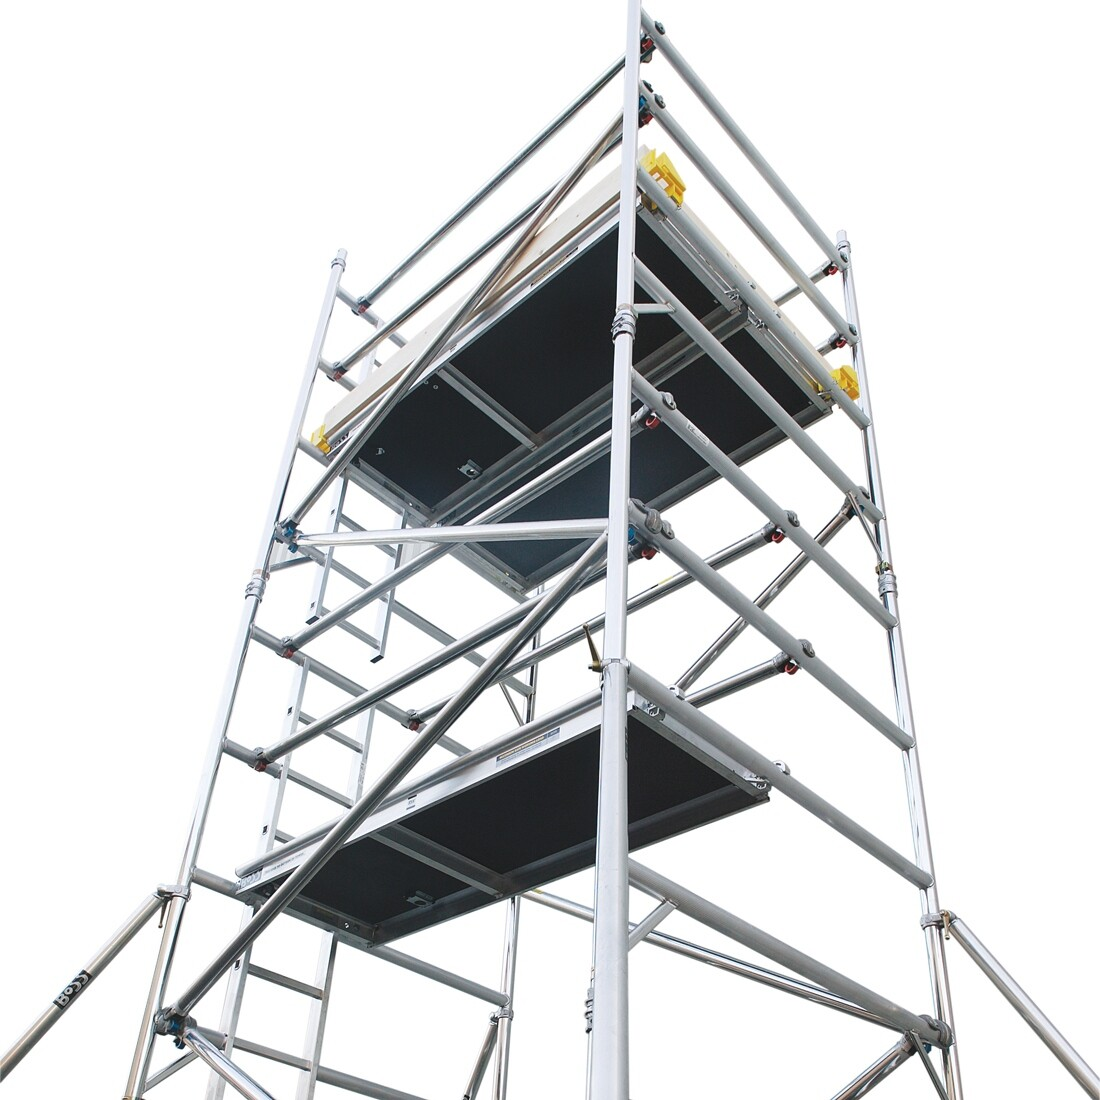 Mobile Tower Double Width - 1.4m wide x 1.8m long x 4.4m high